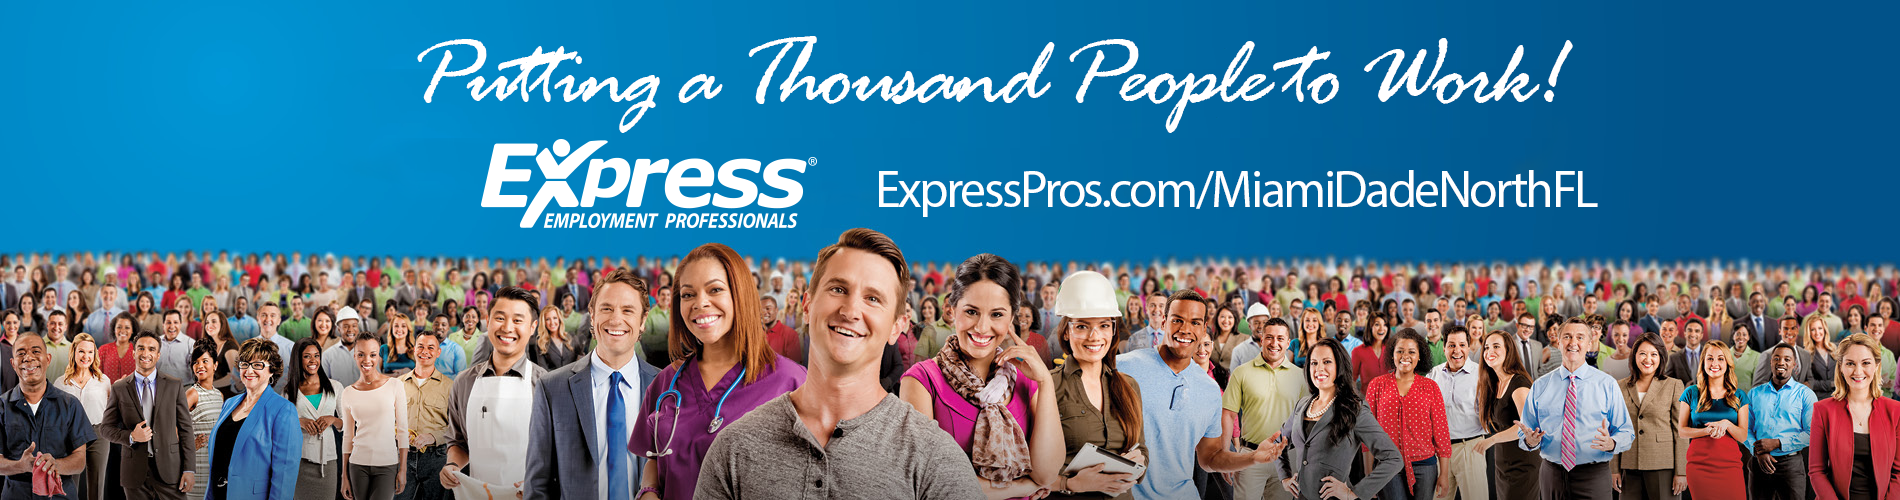 Find A Job In Miami Lakes Today With Express Employment Professionals Great Pictures